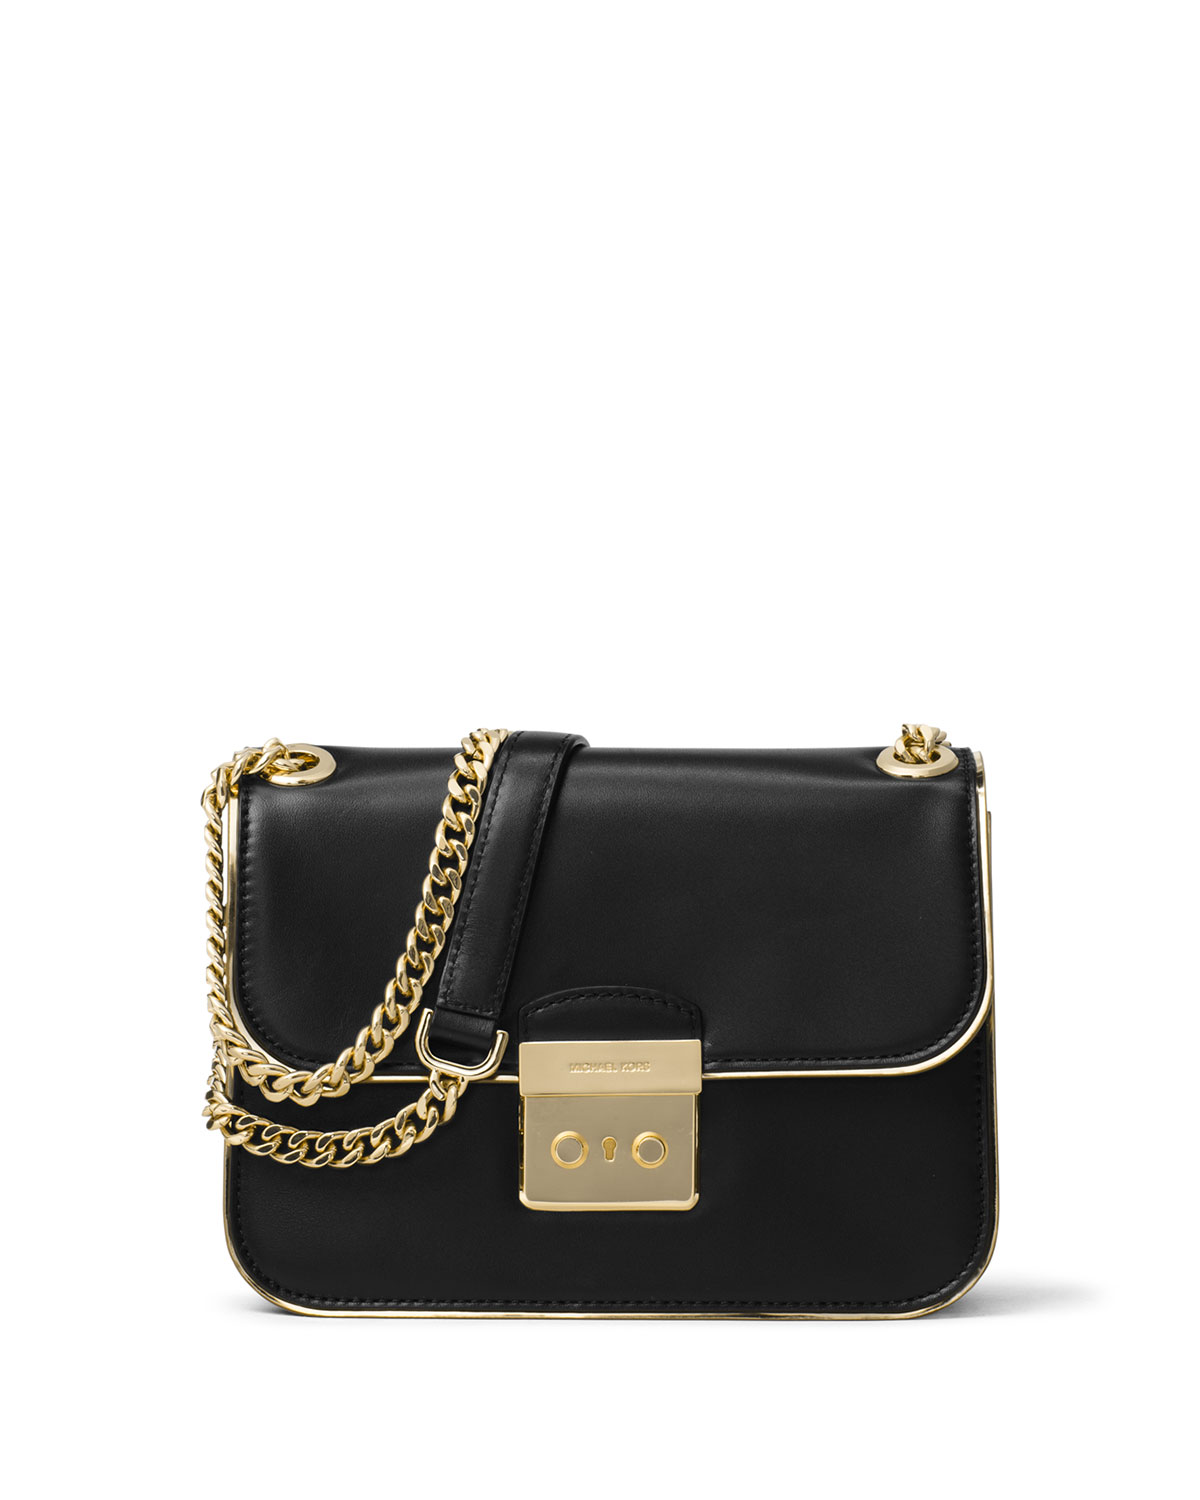 b6c34a519bd7 MICHAEL Michael Kors Sloan Editor Medium Leather Shoulder Bag, Black/Gold